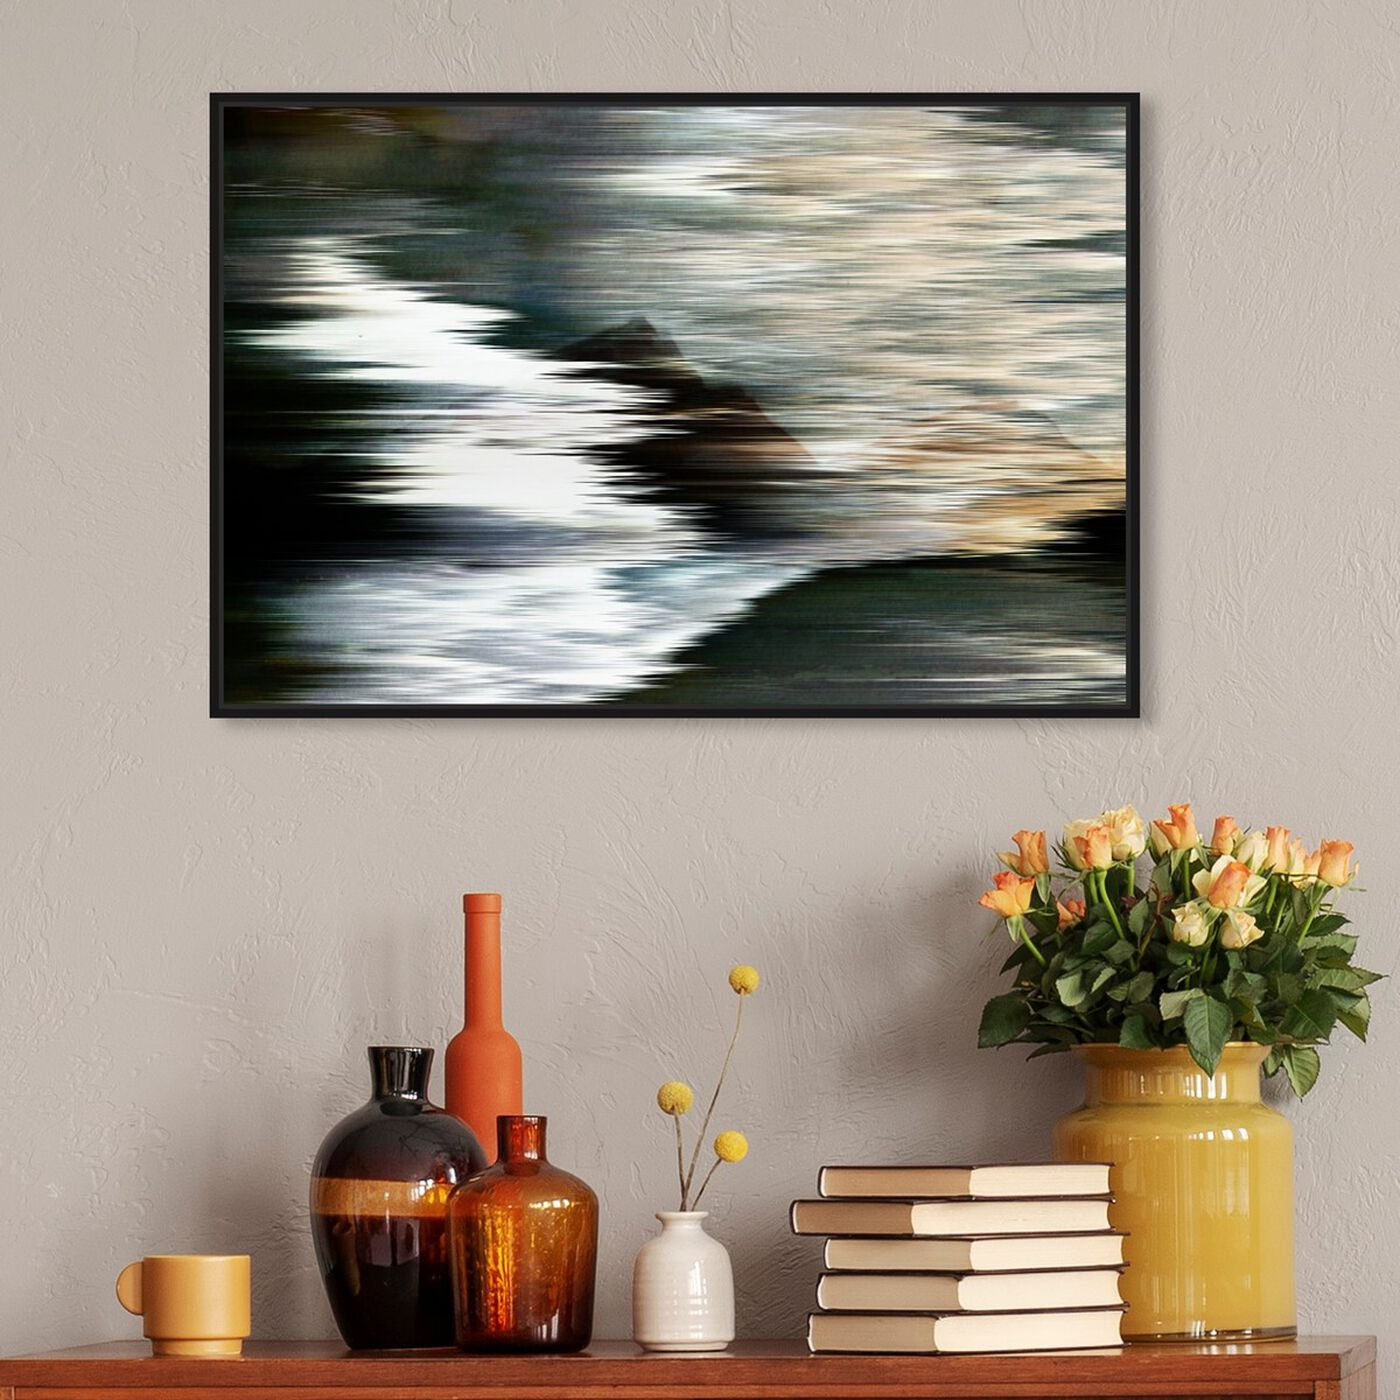 Hanging view of Violone featuring abstract and textures art.